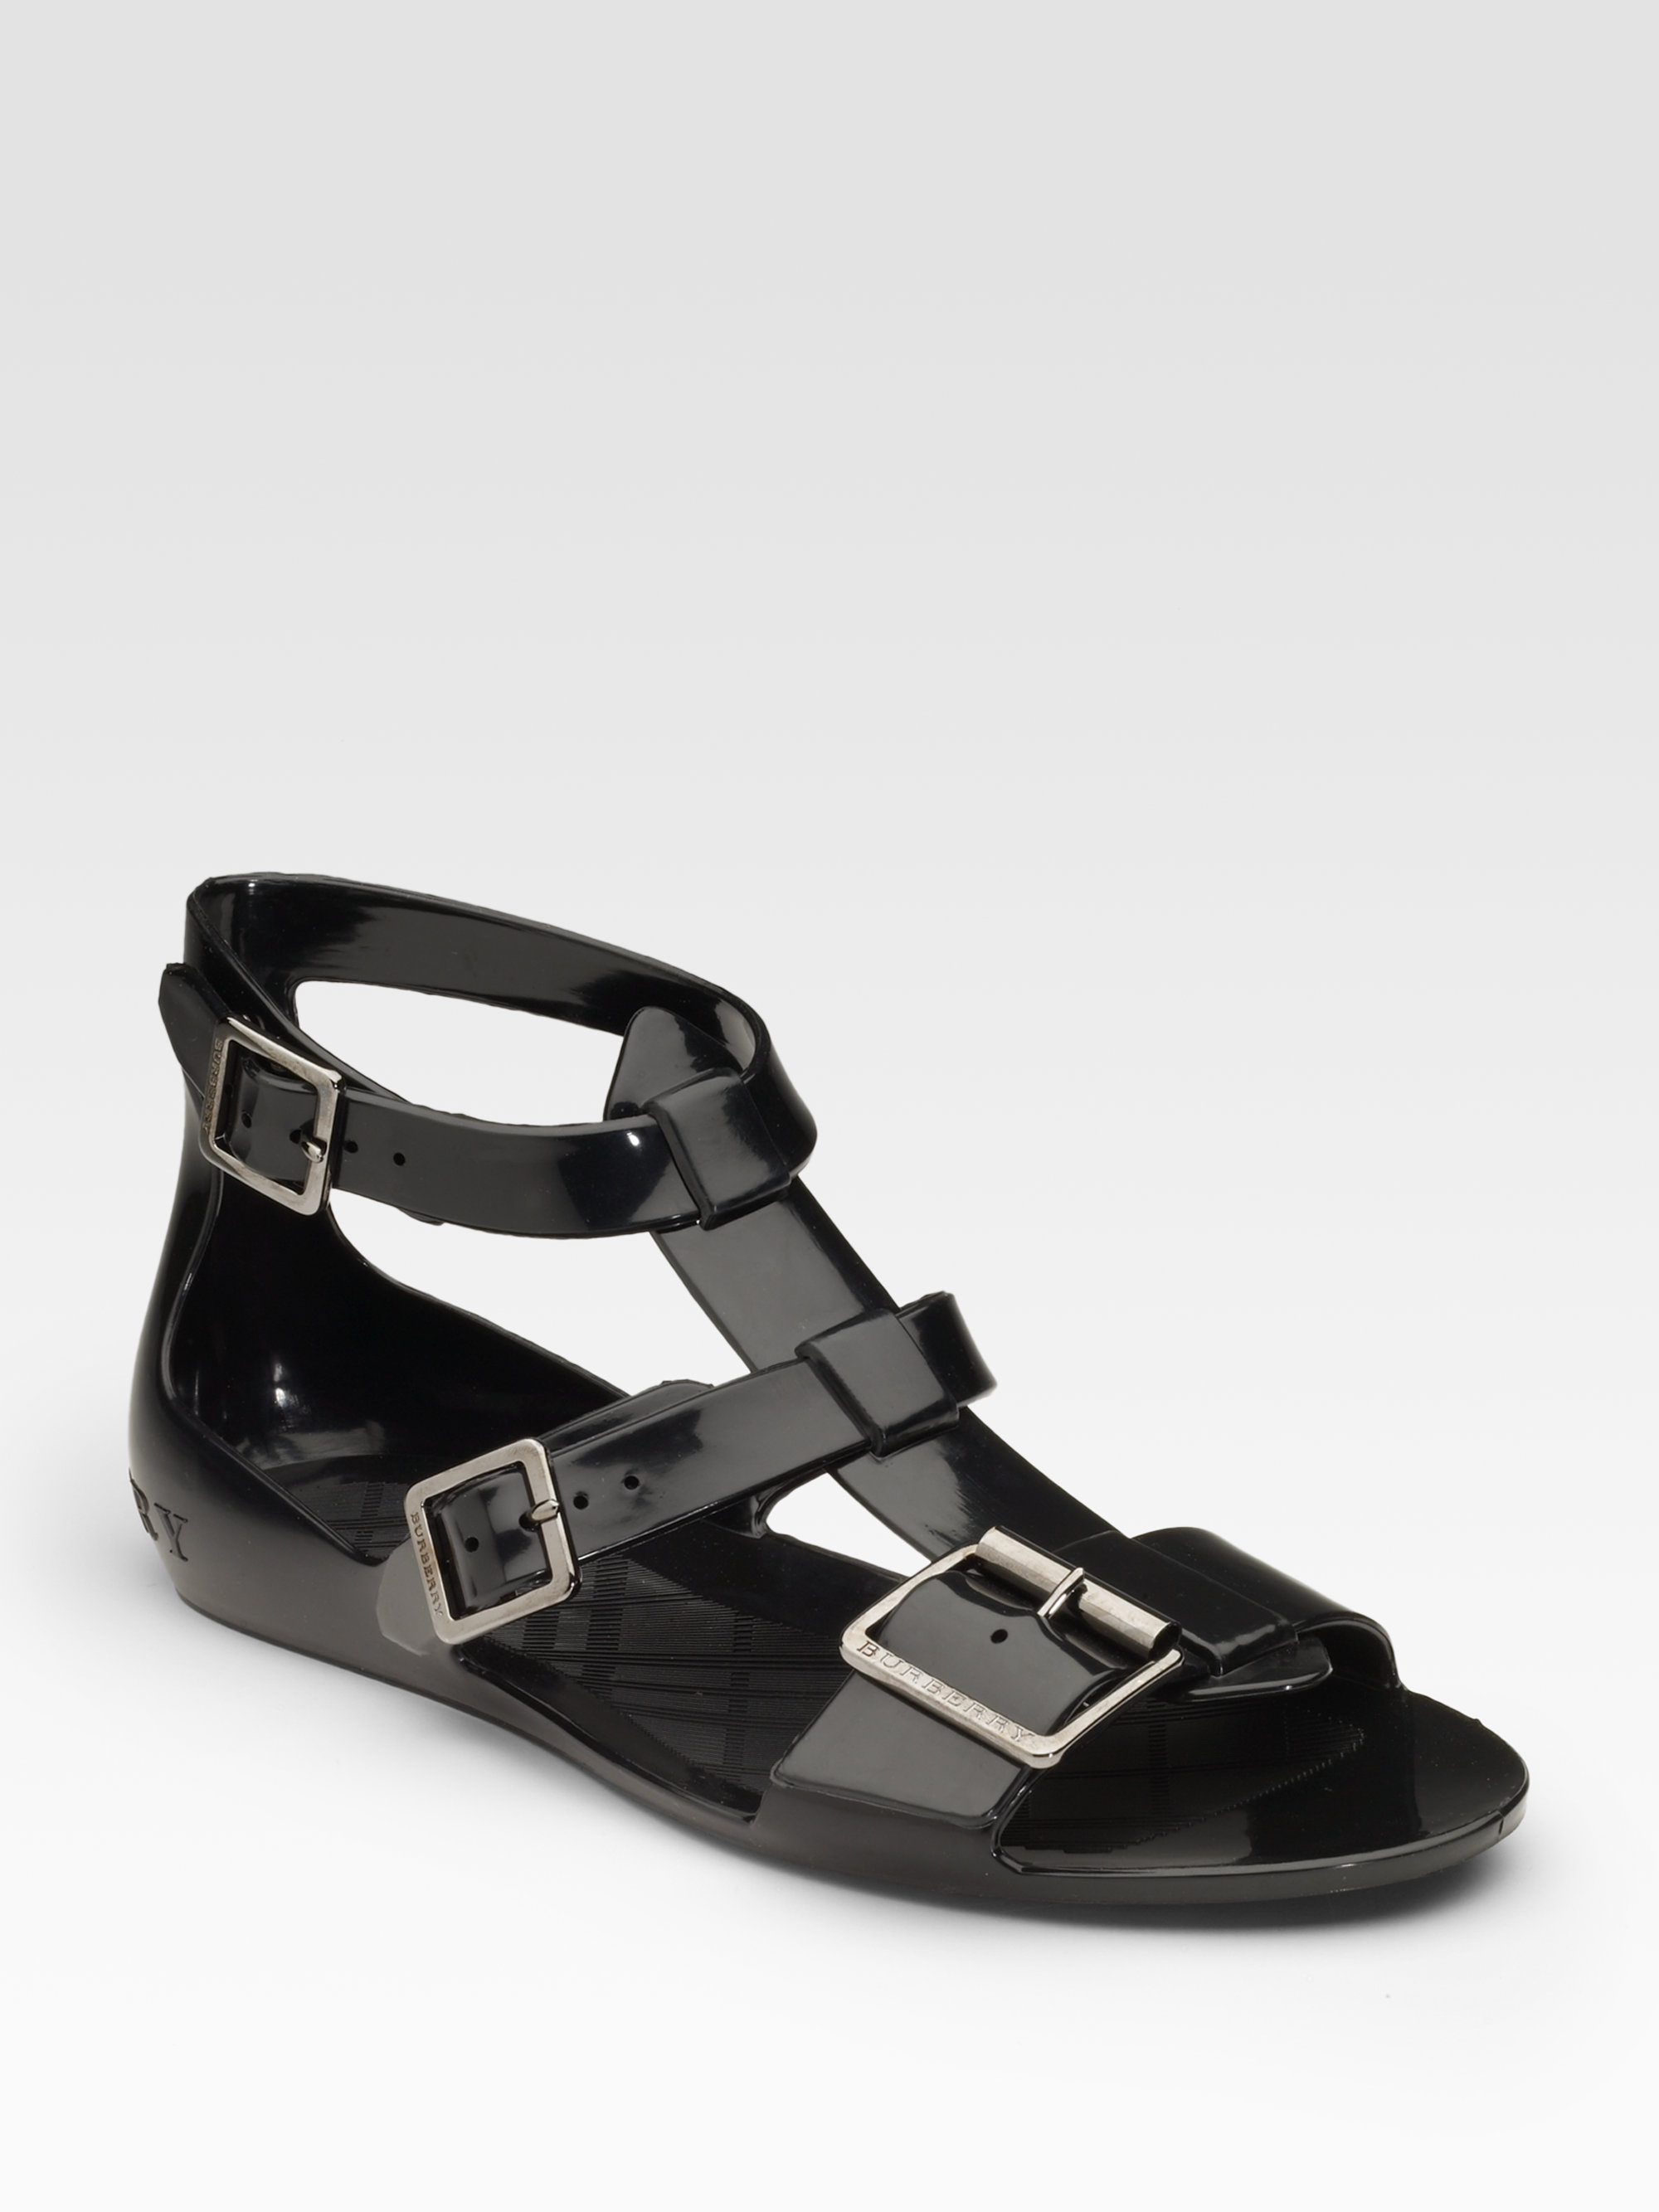 Lyst Burberry Jelly Flat Sandals In Black